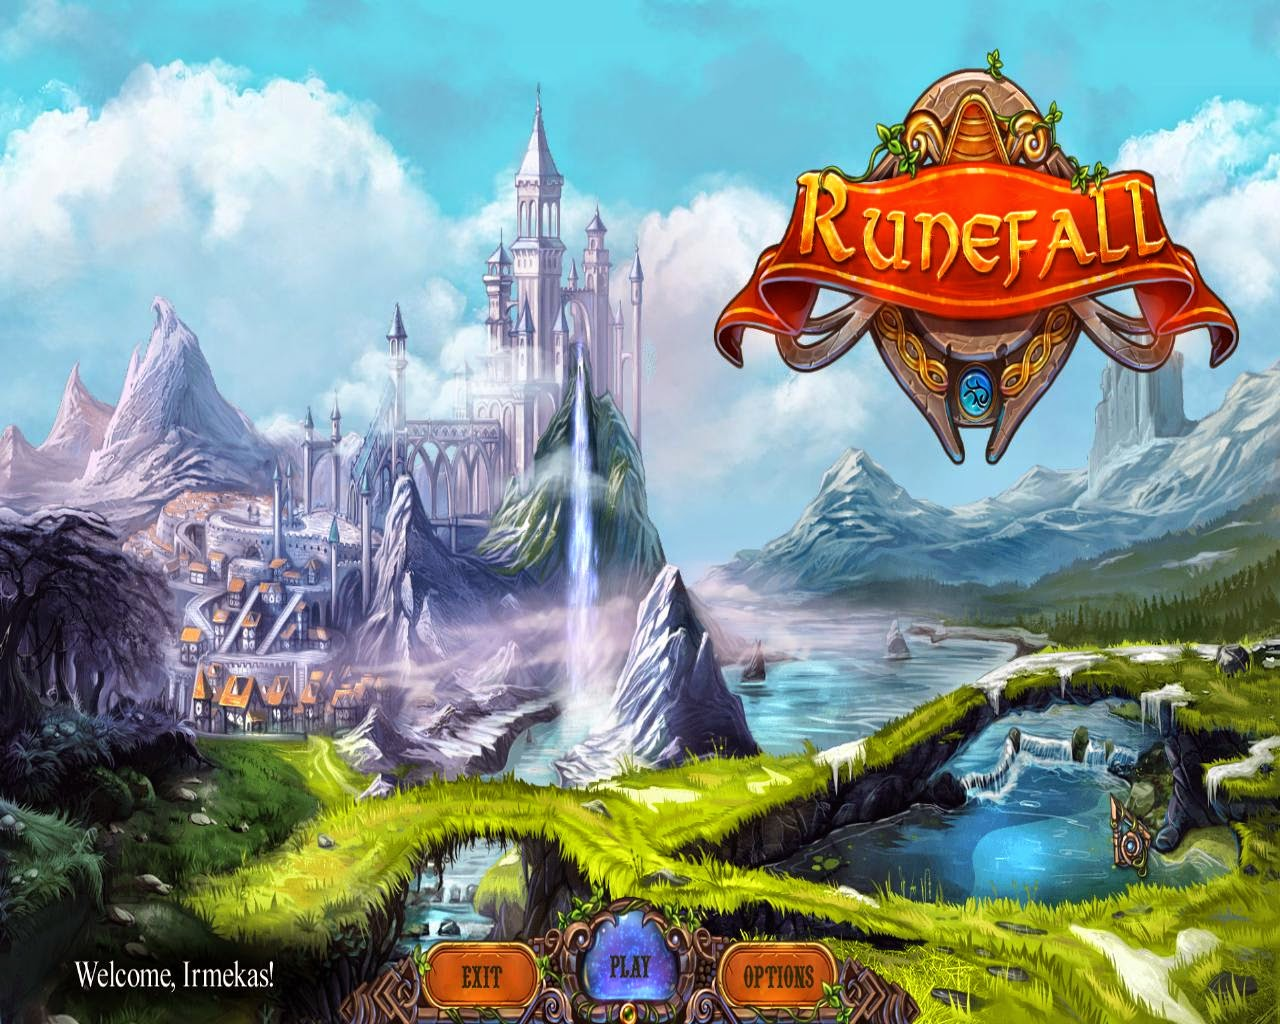 http://trusted.md/blog/game/2015/02/11/runefall_free_download_pc_game